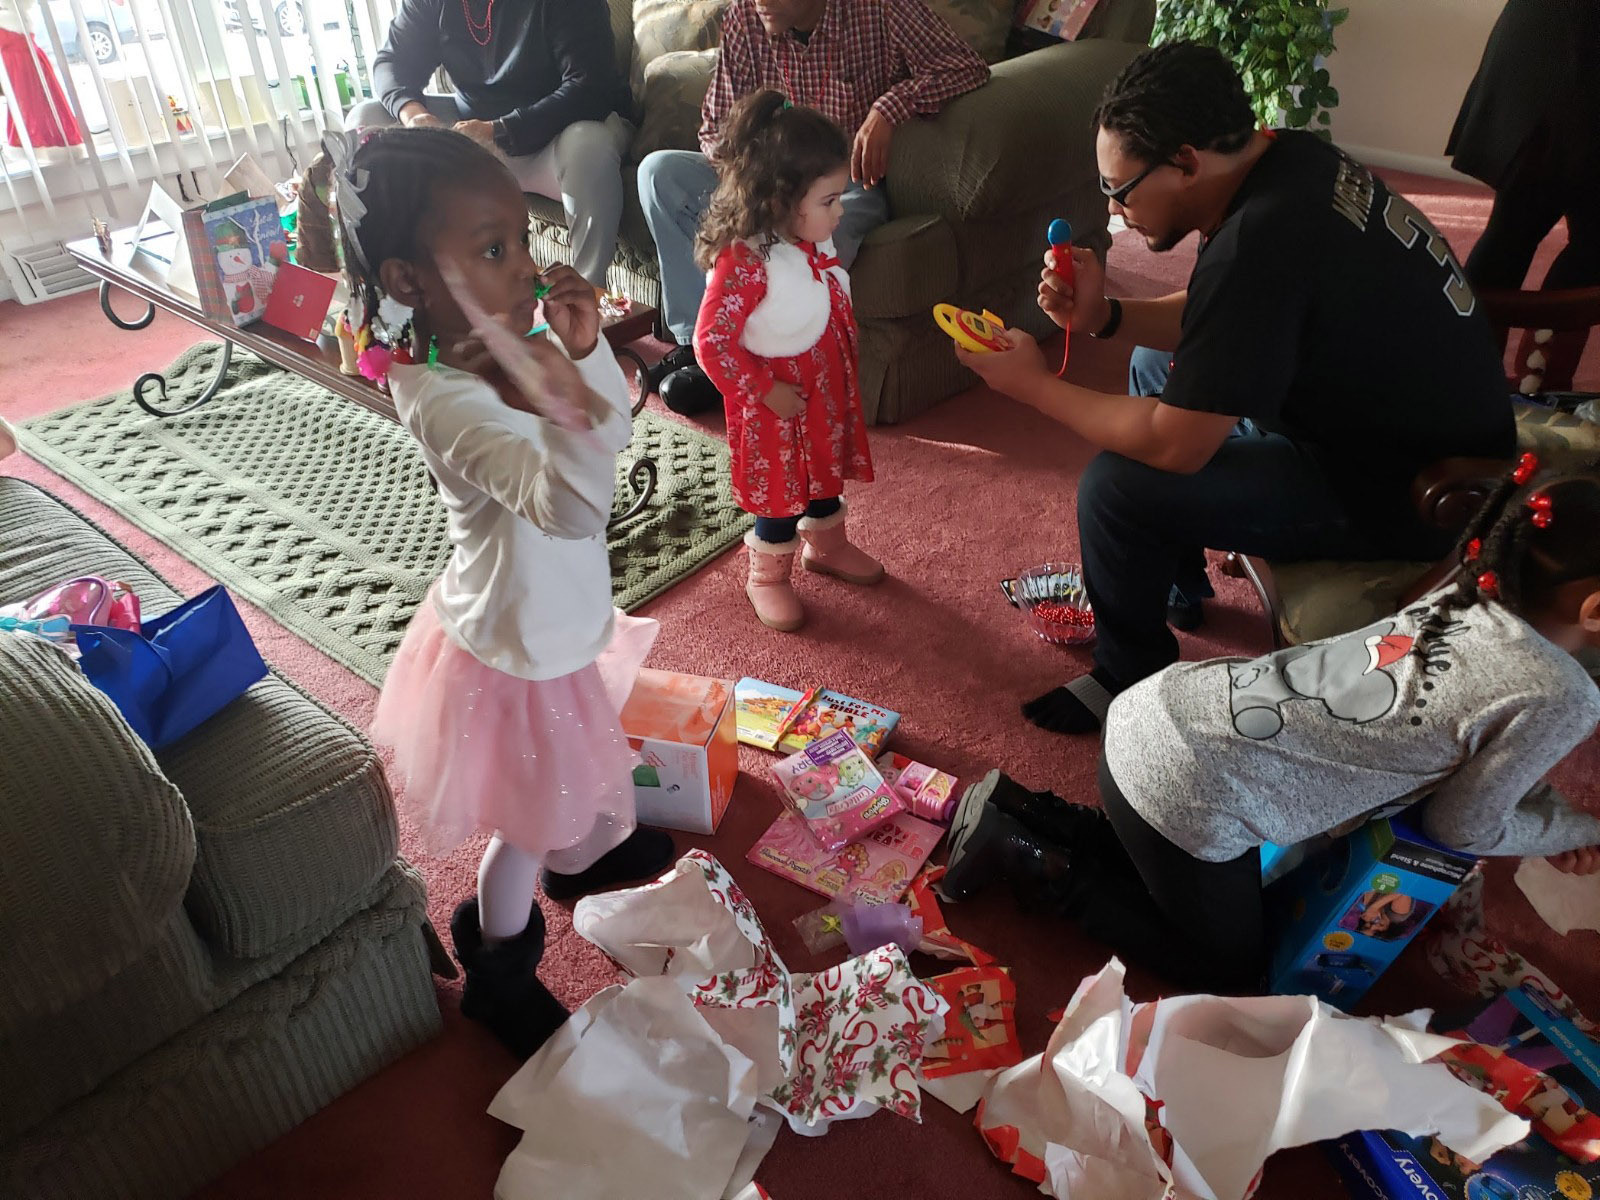 My great nieces opening Christmas present at Renee's home and nephew, Dion, assisting his niece (one of my great nieces). Photo by Paula Cooper.